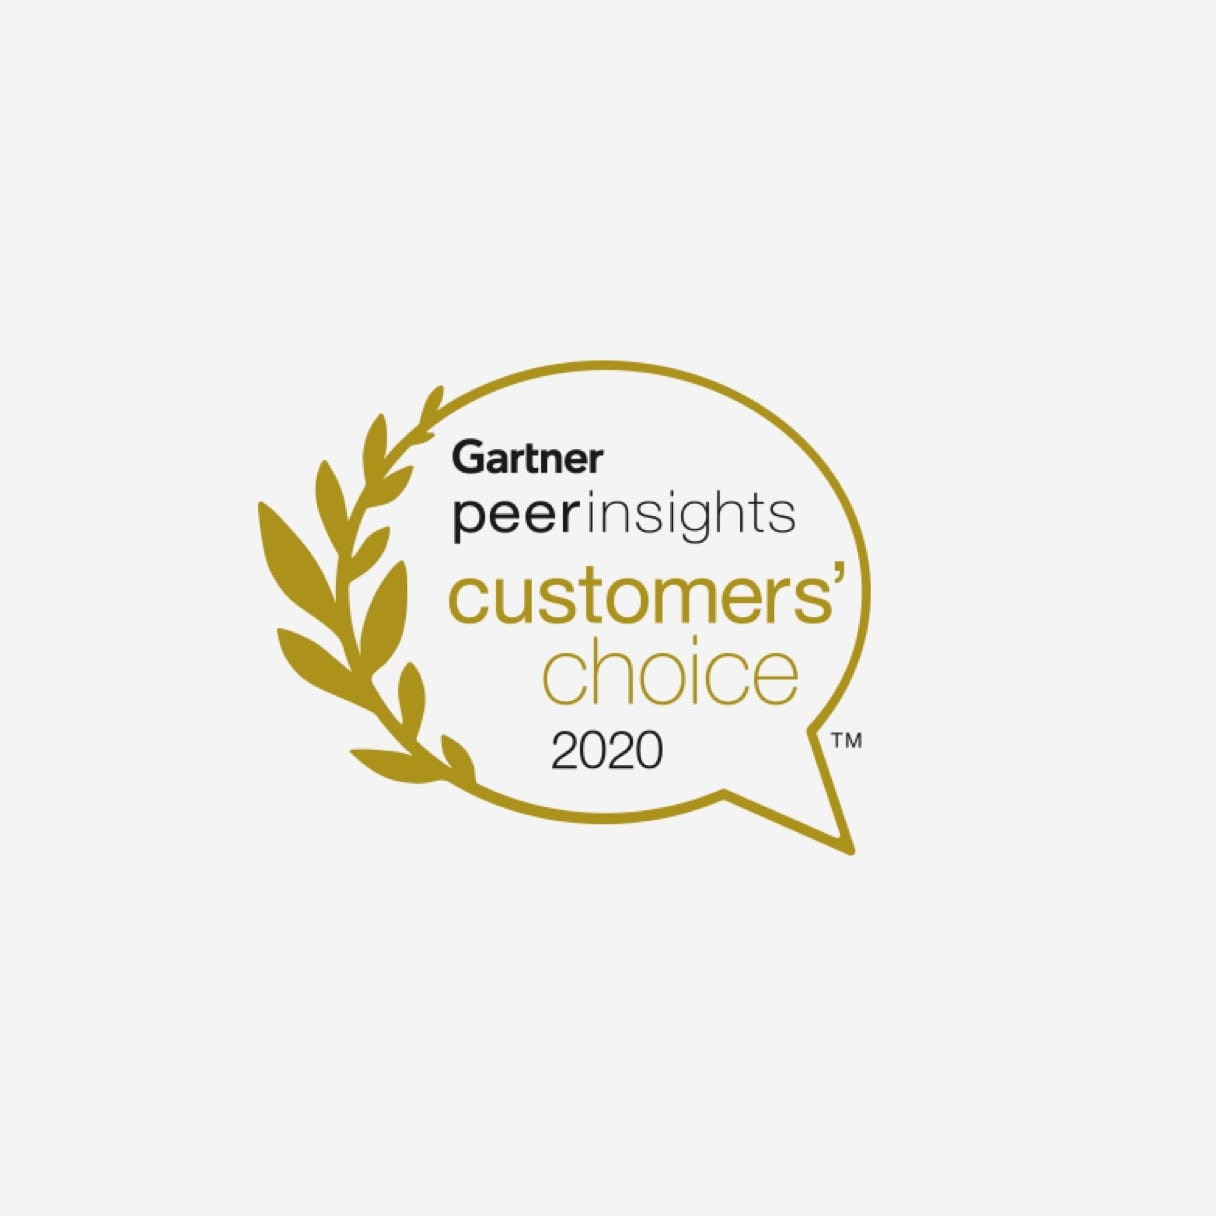 Gartner peer insights customers' choice 2020 logo